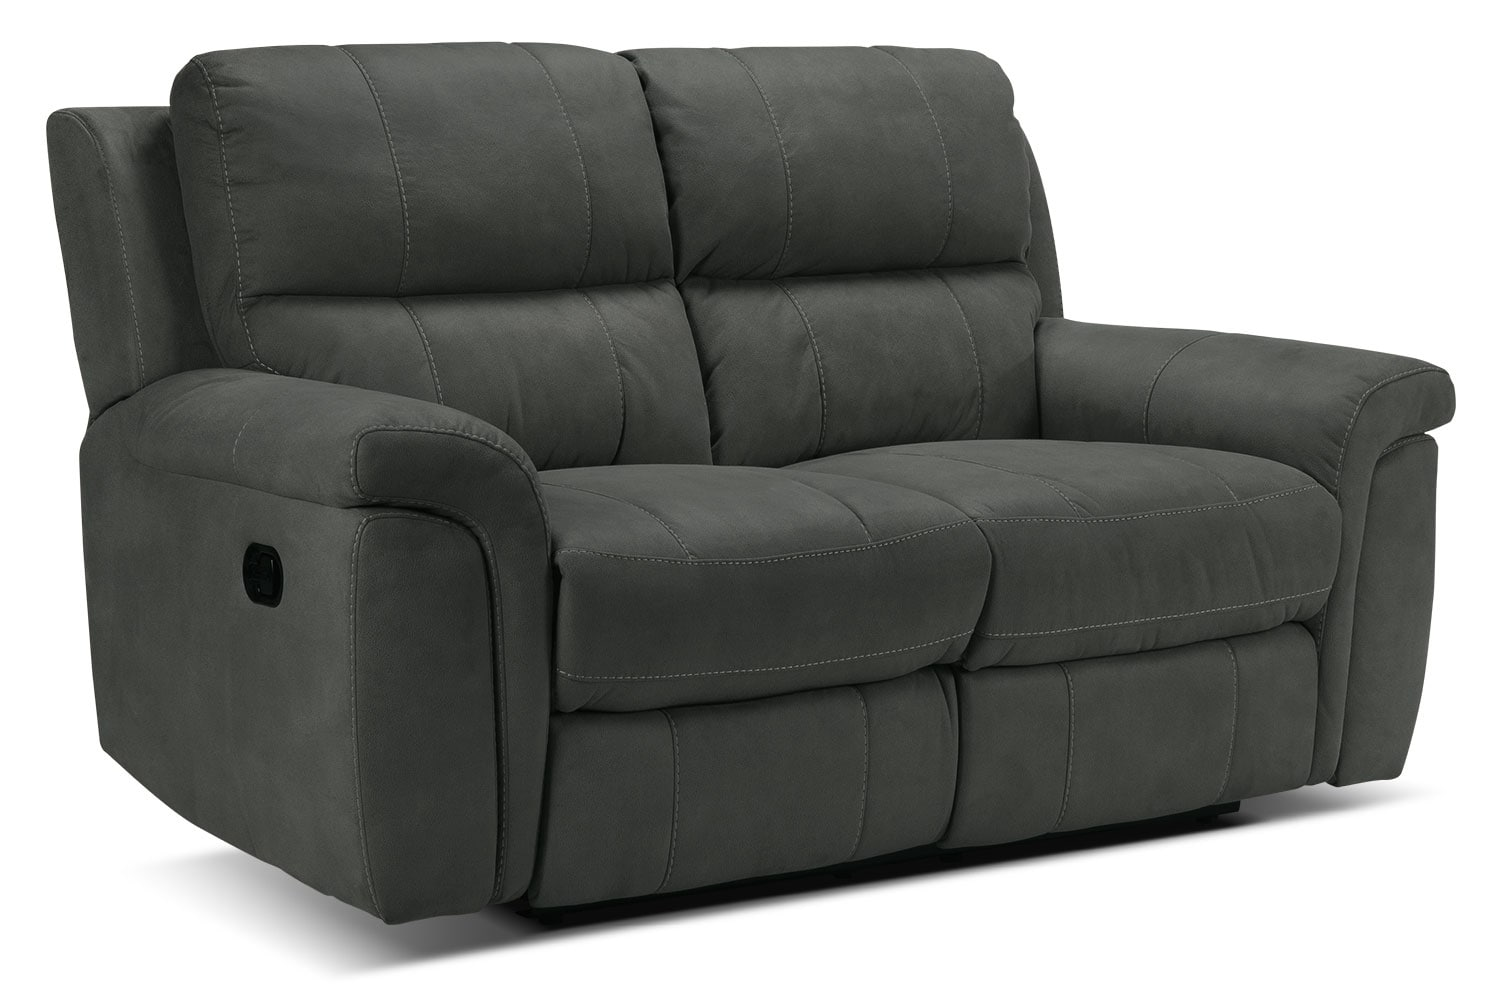 Roarke Reclining Loveseat - Charcoal